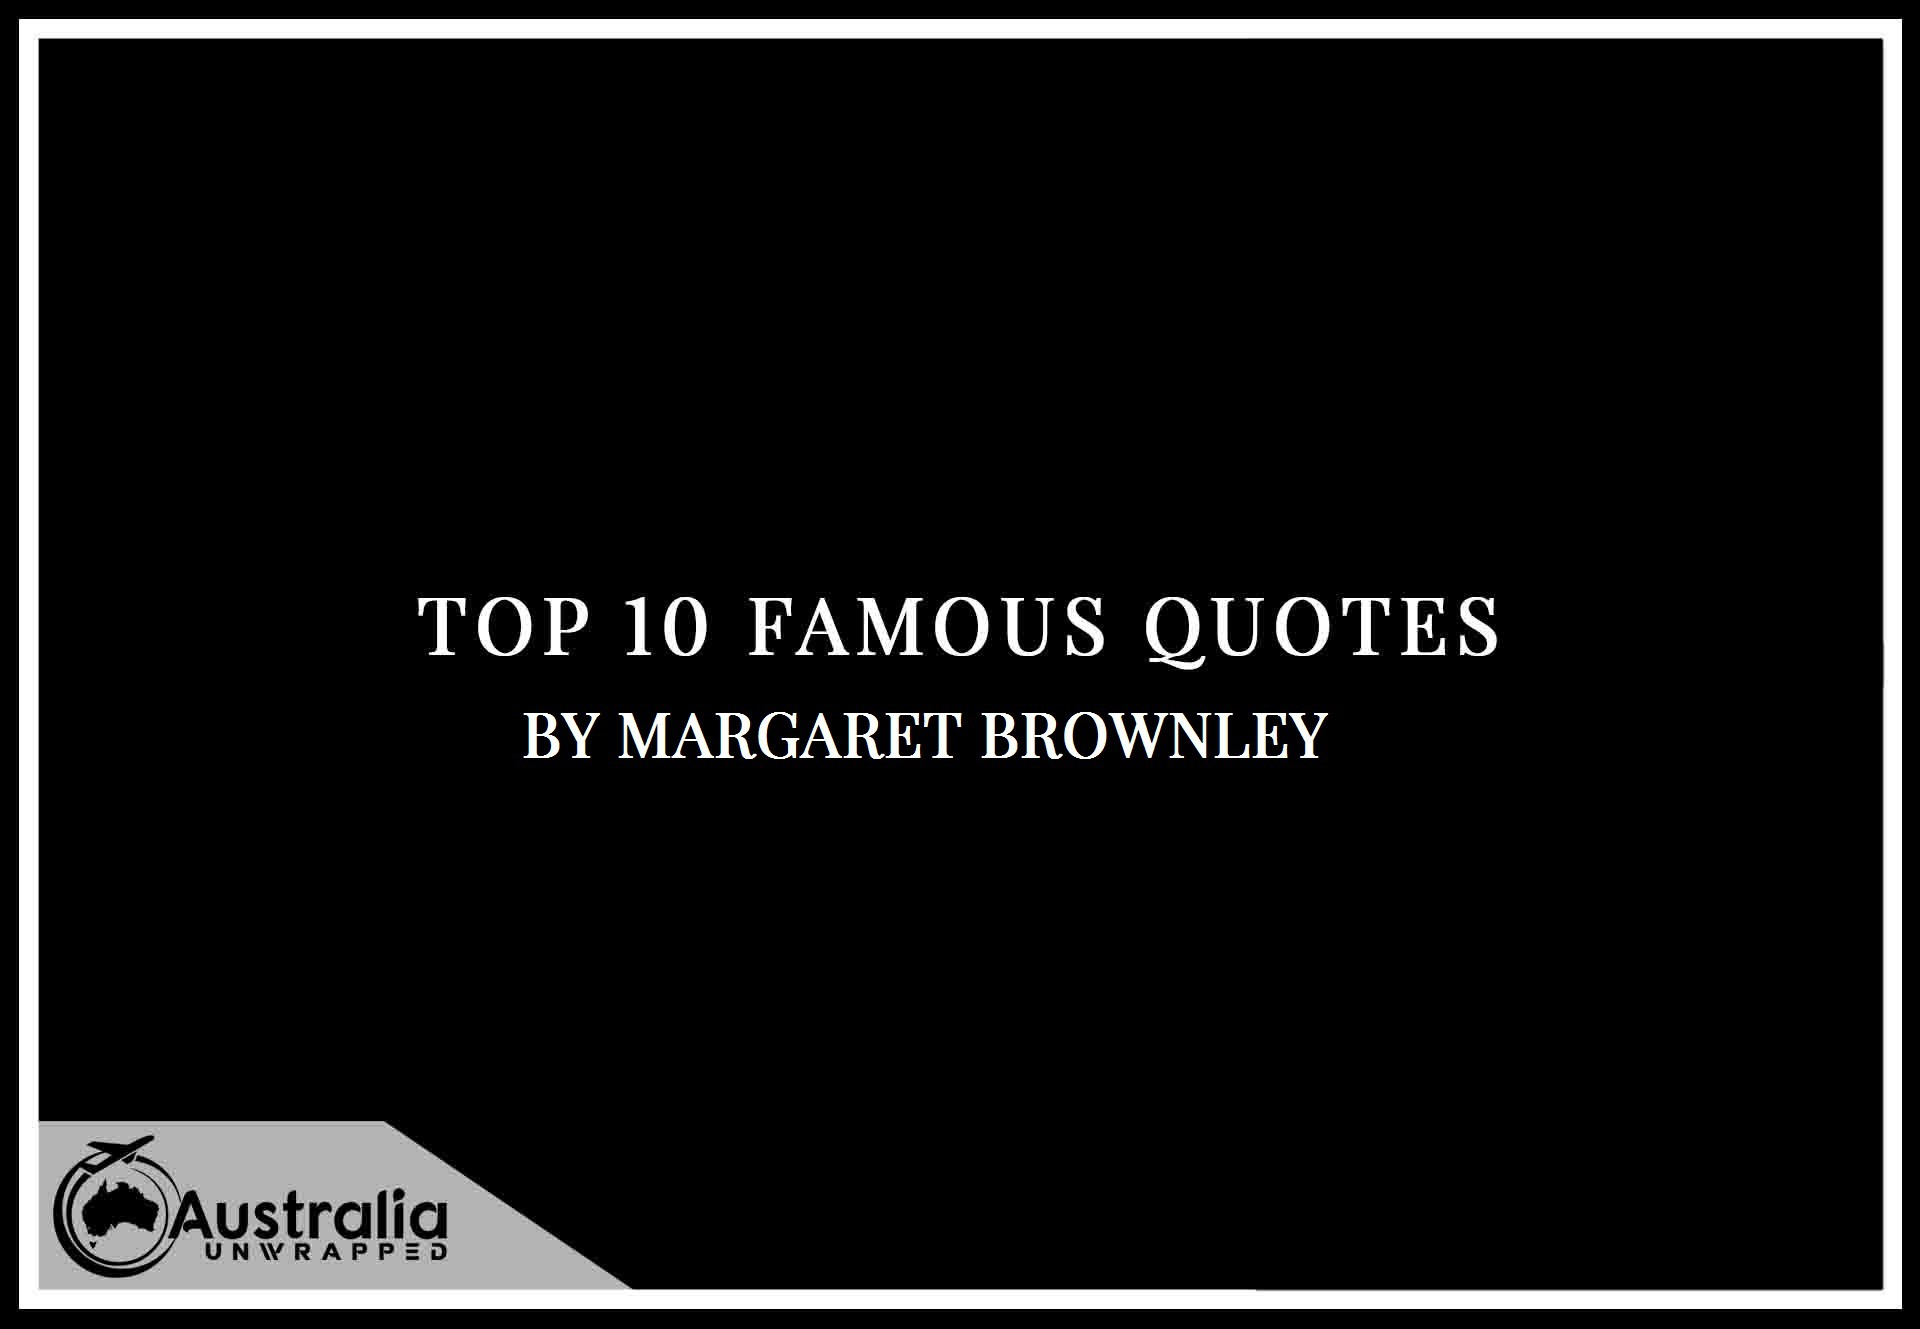 Margaret Brownley's Top 10 Popular and Famous Quotes